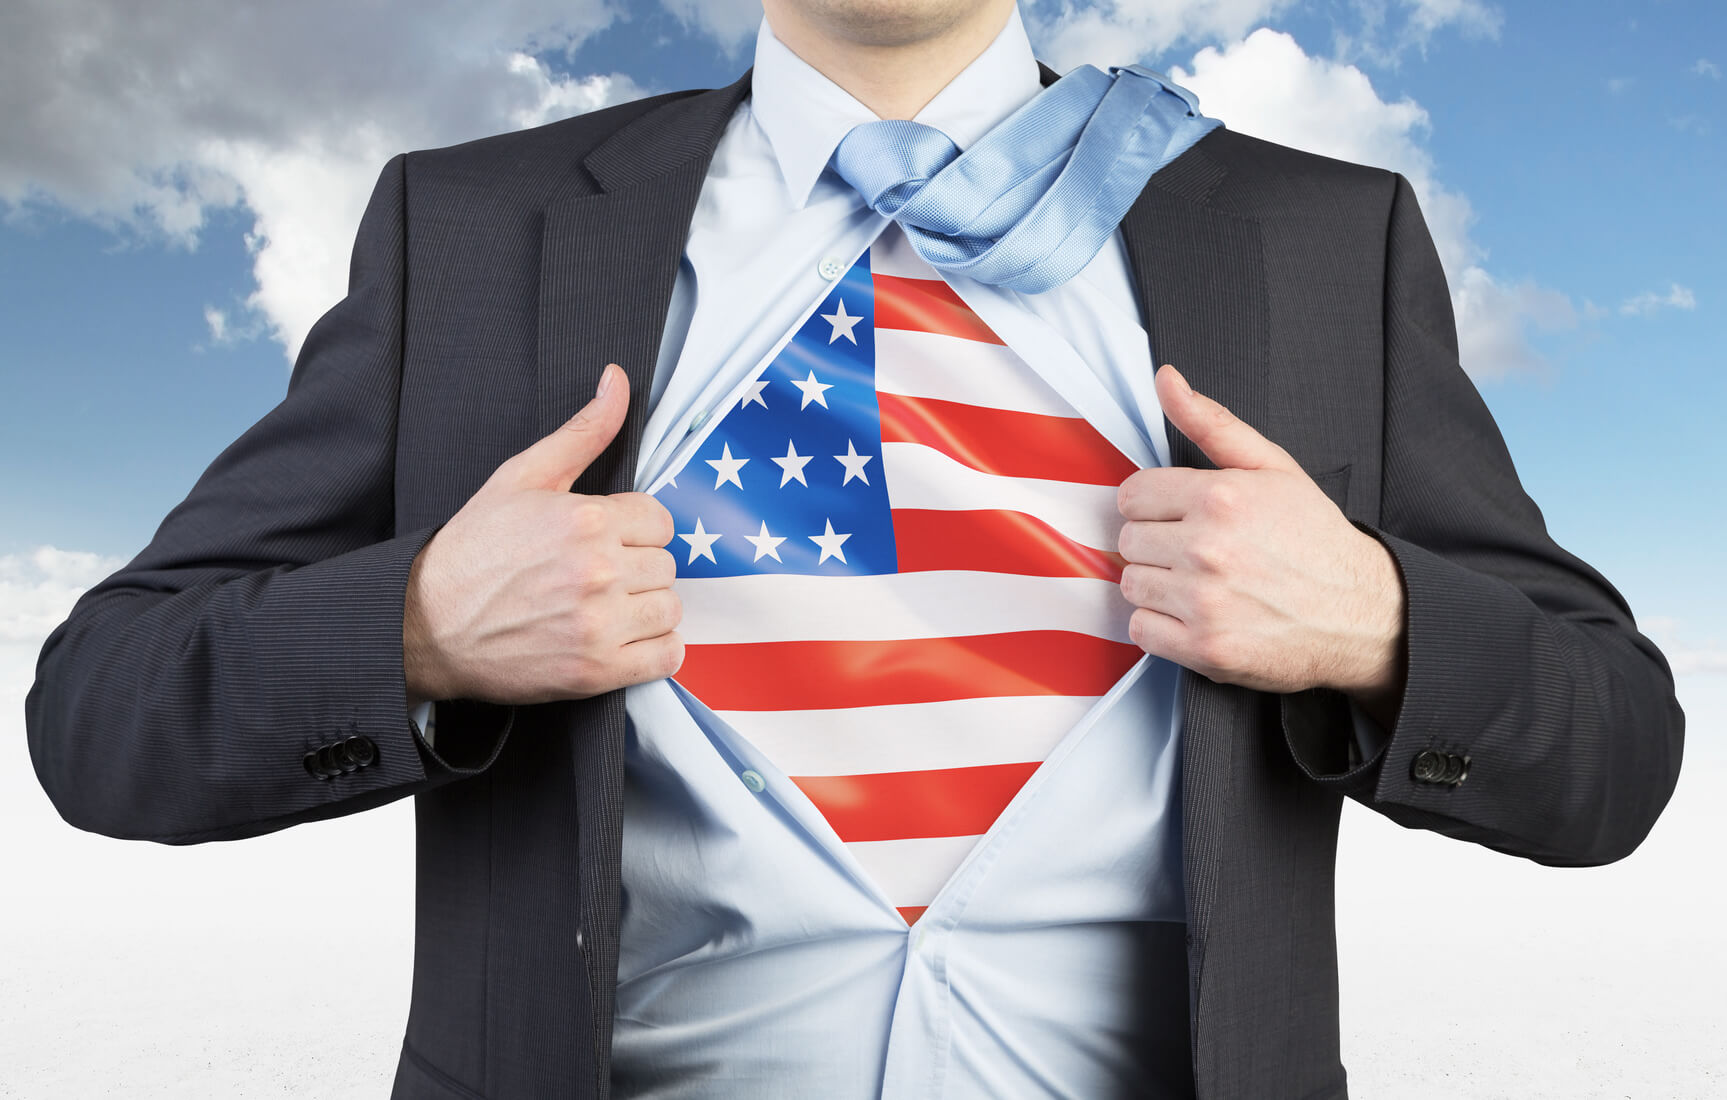 A man tearing the shirt. US flag on the chest. Cloudy sky background.